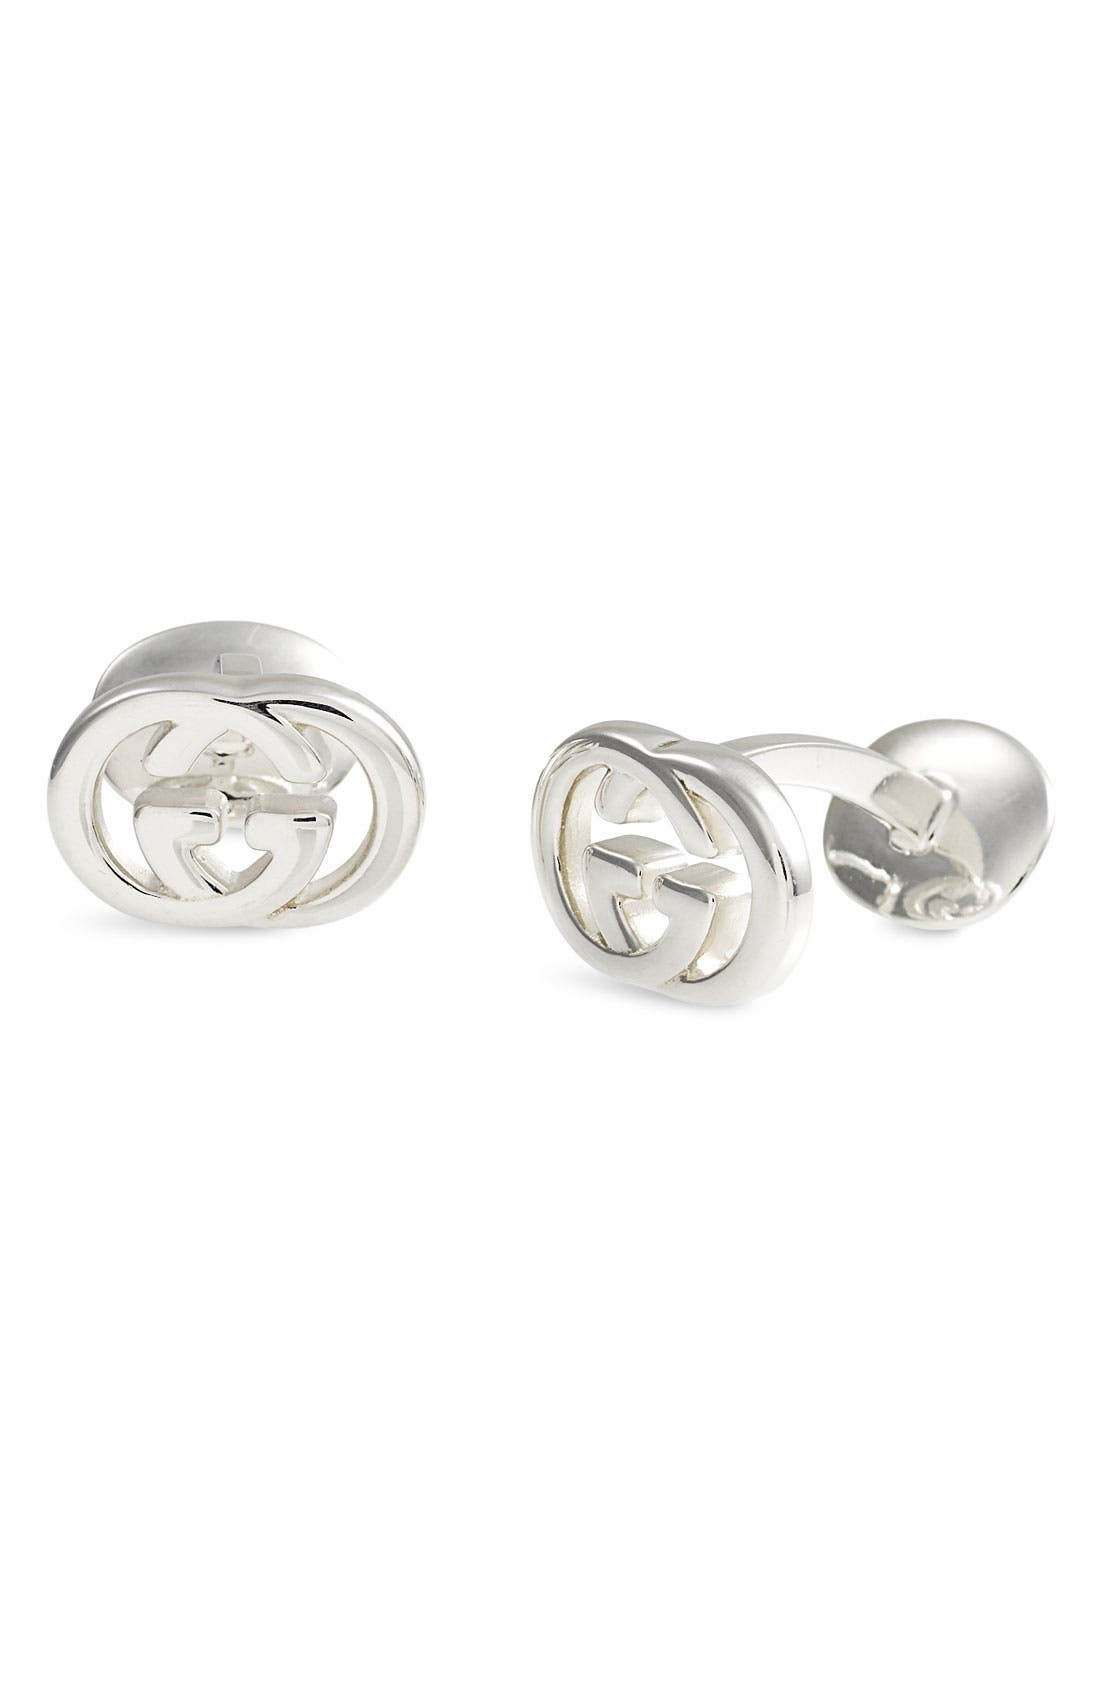 Main Image - Gucci 'Silver Britt' Cuff Links